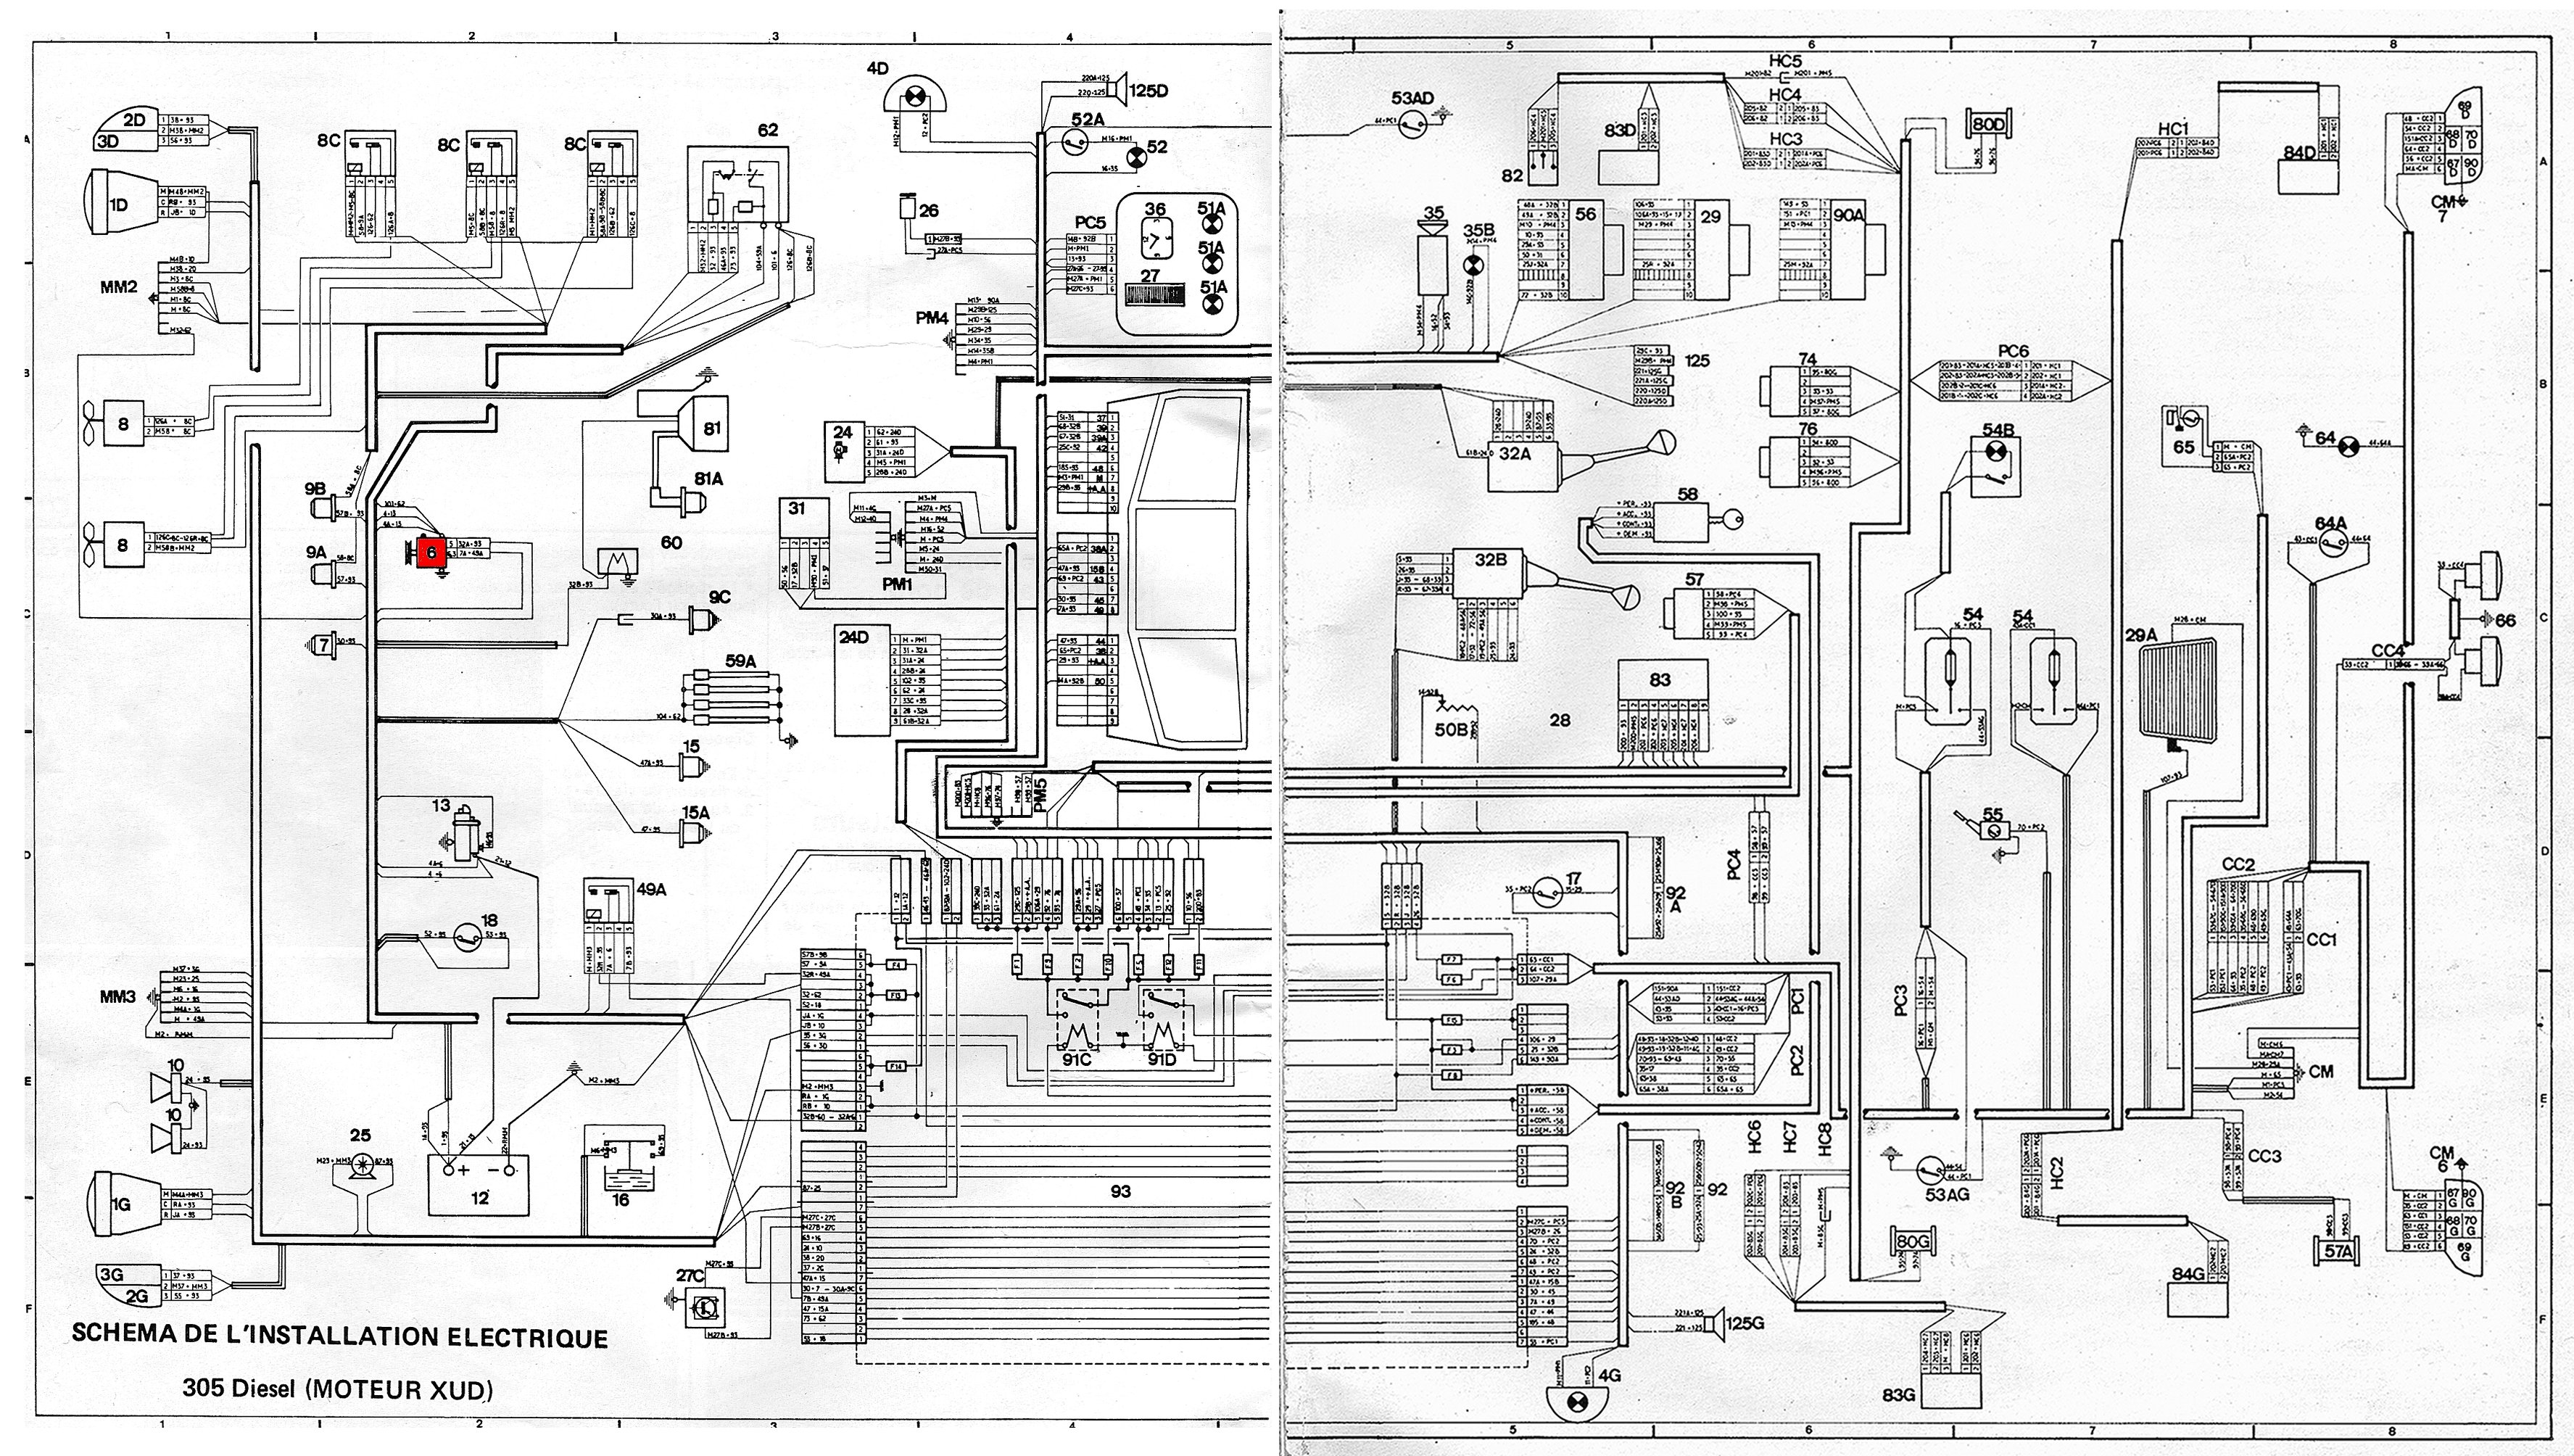 2011 Sprinter Van Wiring Diagram Schematics Diagrams Dodge Radio Harness Mercedes 2005 Mb